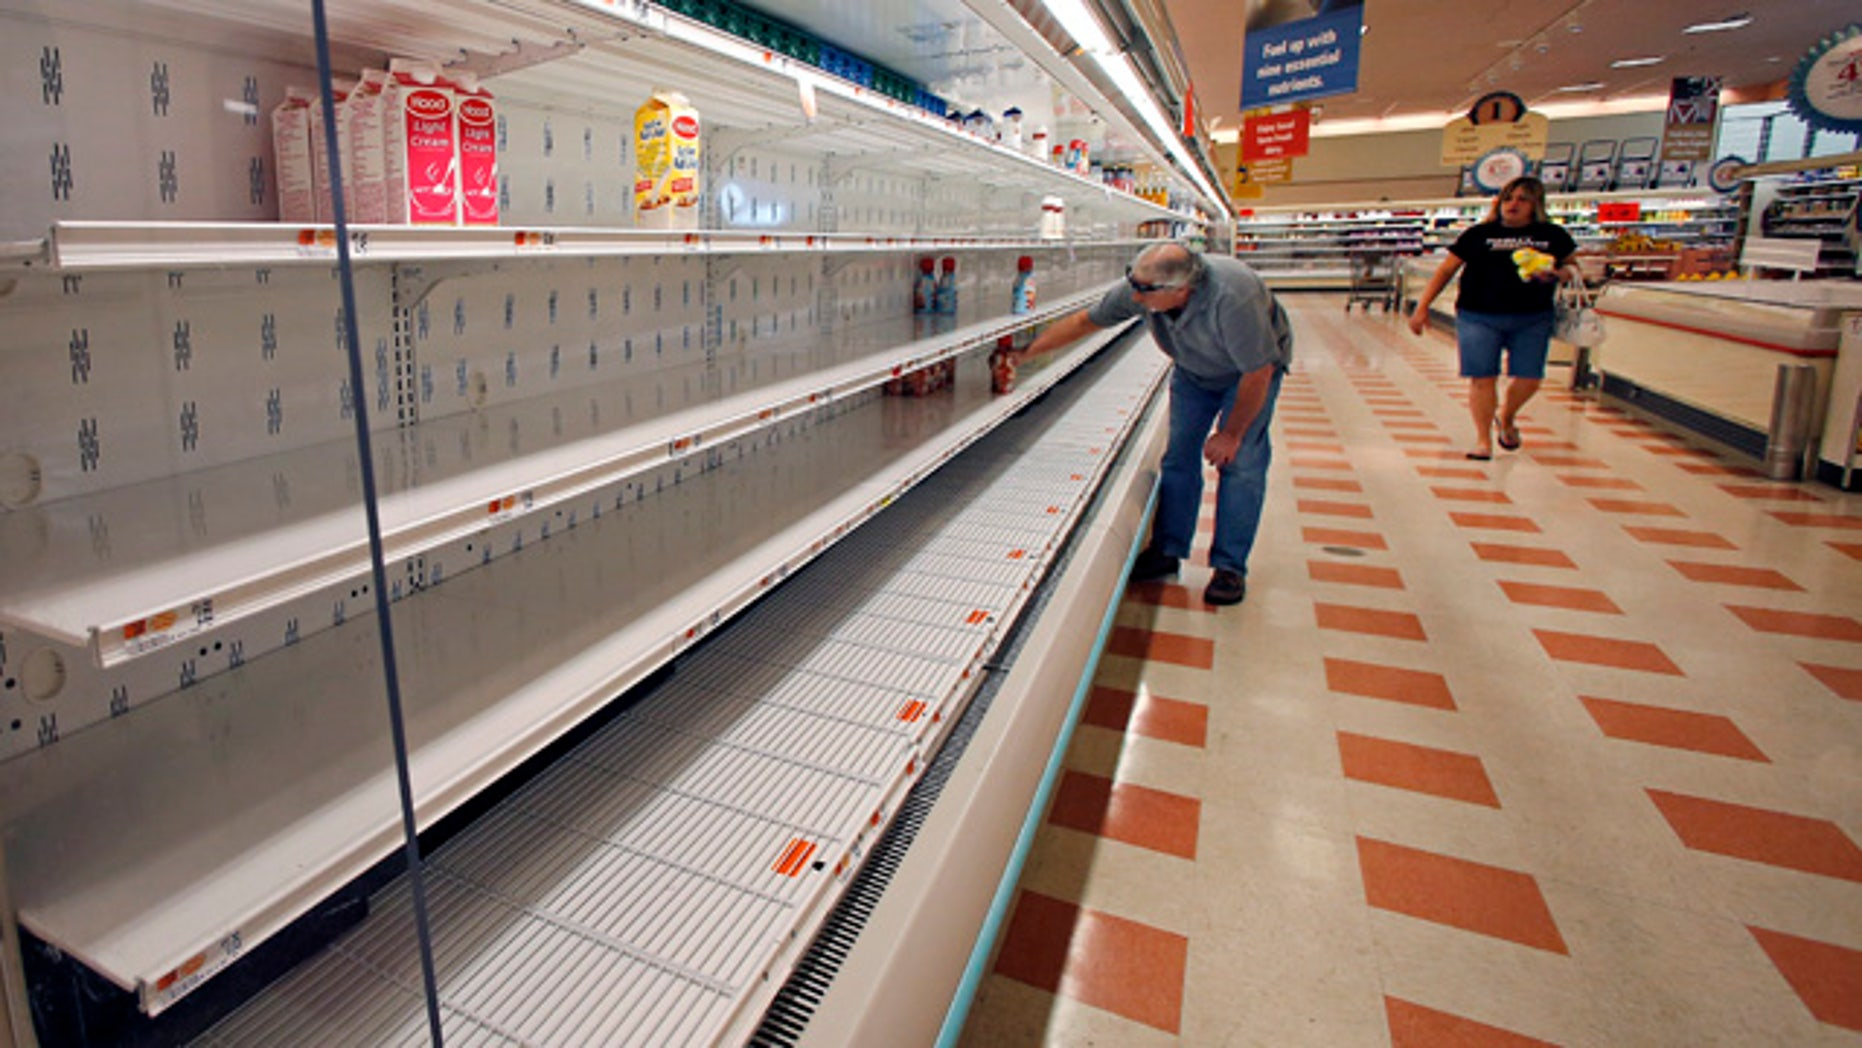 August 18, 2014: A shopper reaches into a mostly empty dairy shelf at Market Basket in Haverhill, Mass. (AP Photo/Elise Amendola)